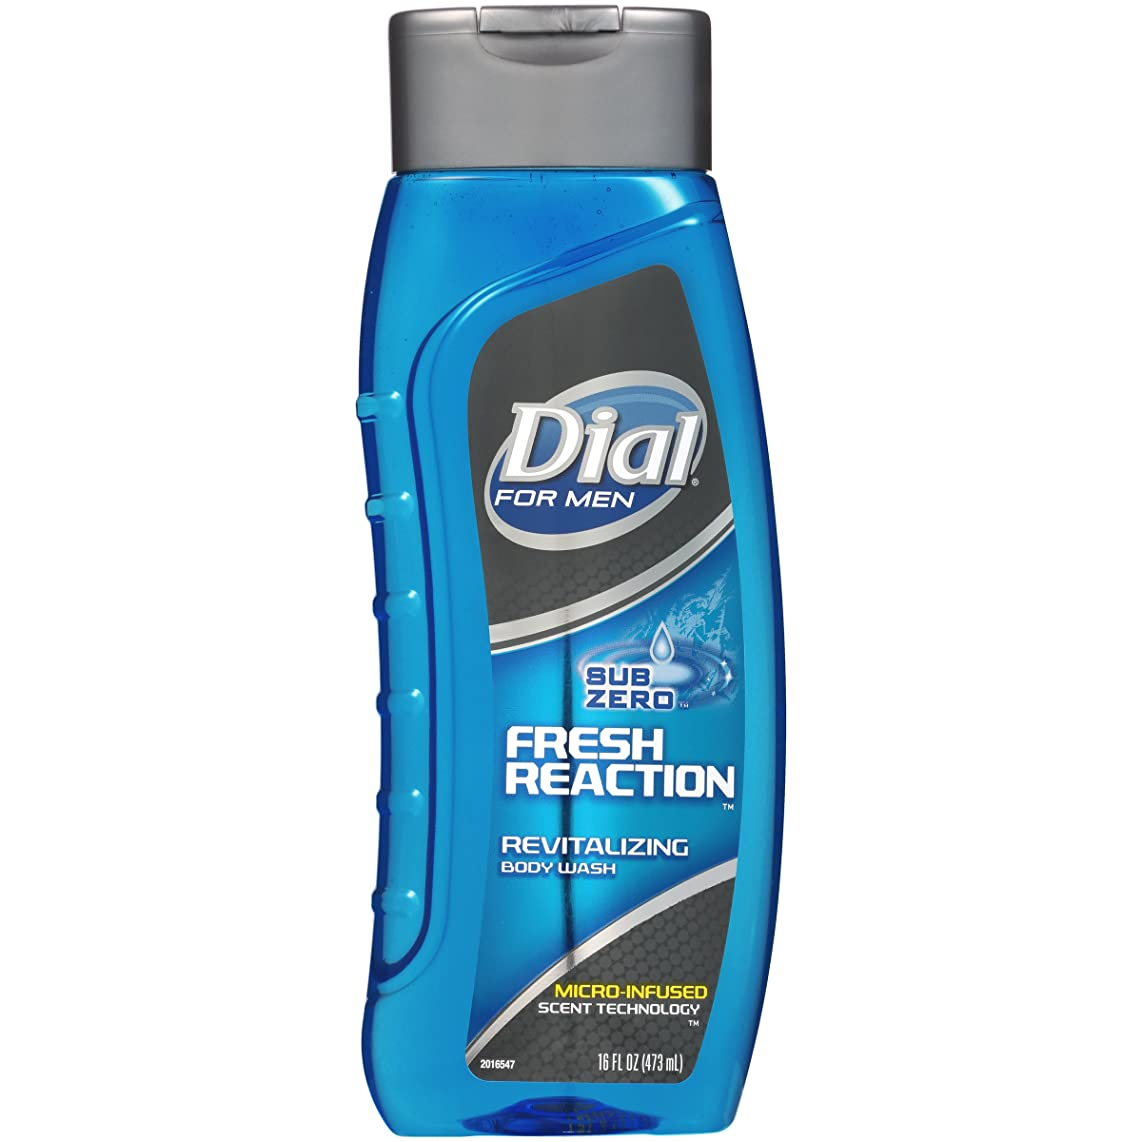 Dial for Men Body Wash, Fresh Reaction, 16 Fl. Oz